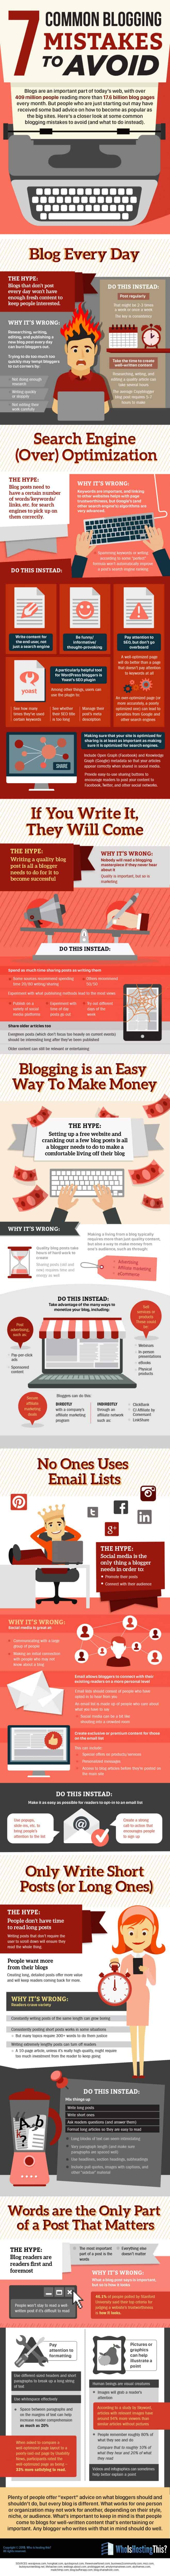 7 Common Blogging Mistakes To Avoid Infographic